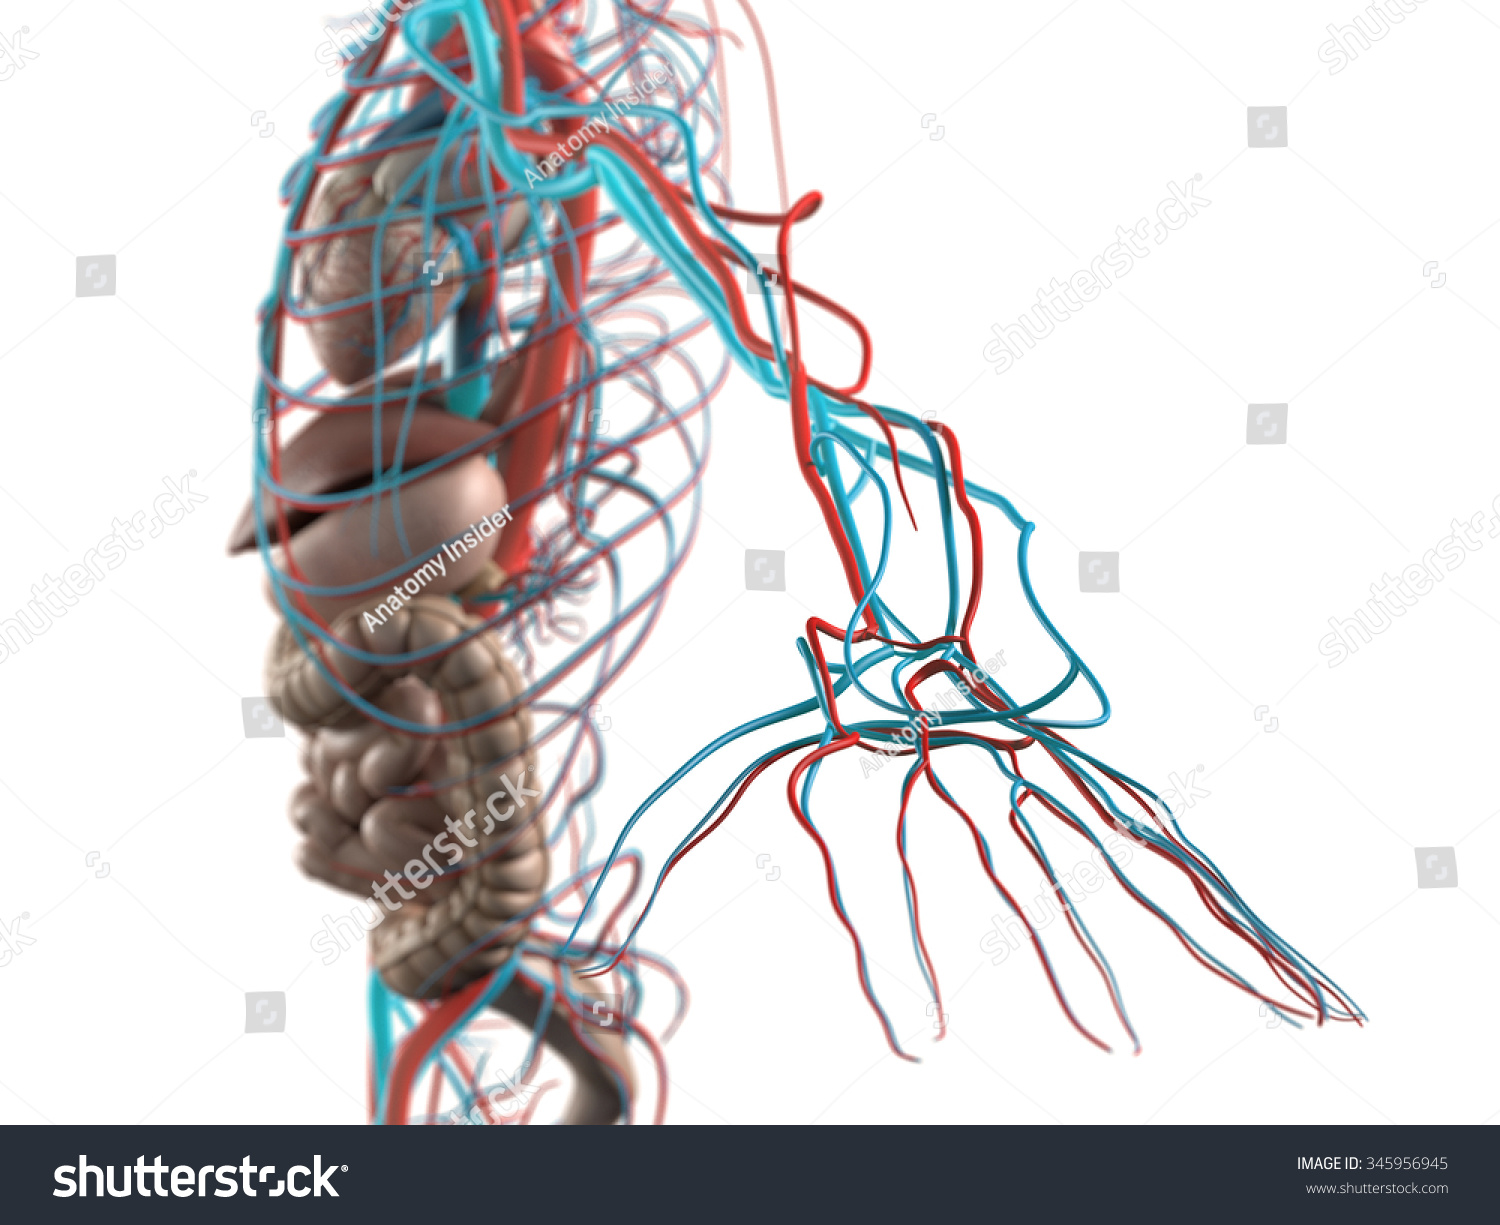 Human Anatomy Side View Abdomen Organs Stock Illustration 345956945 ...